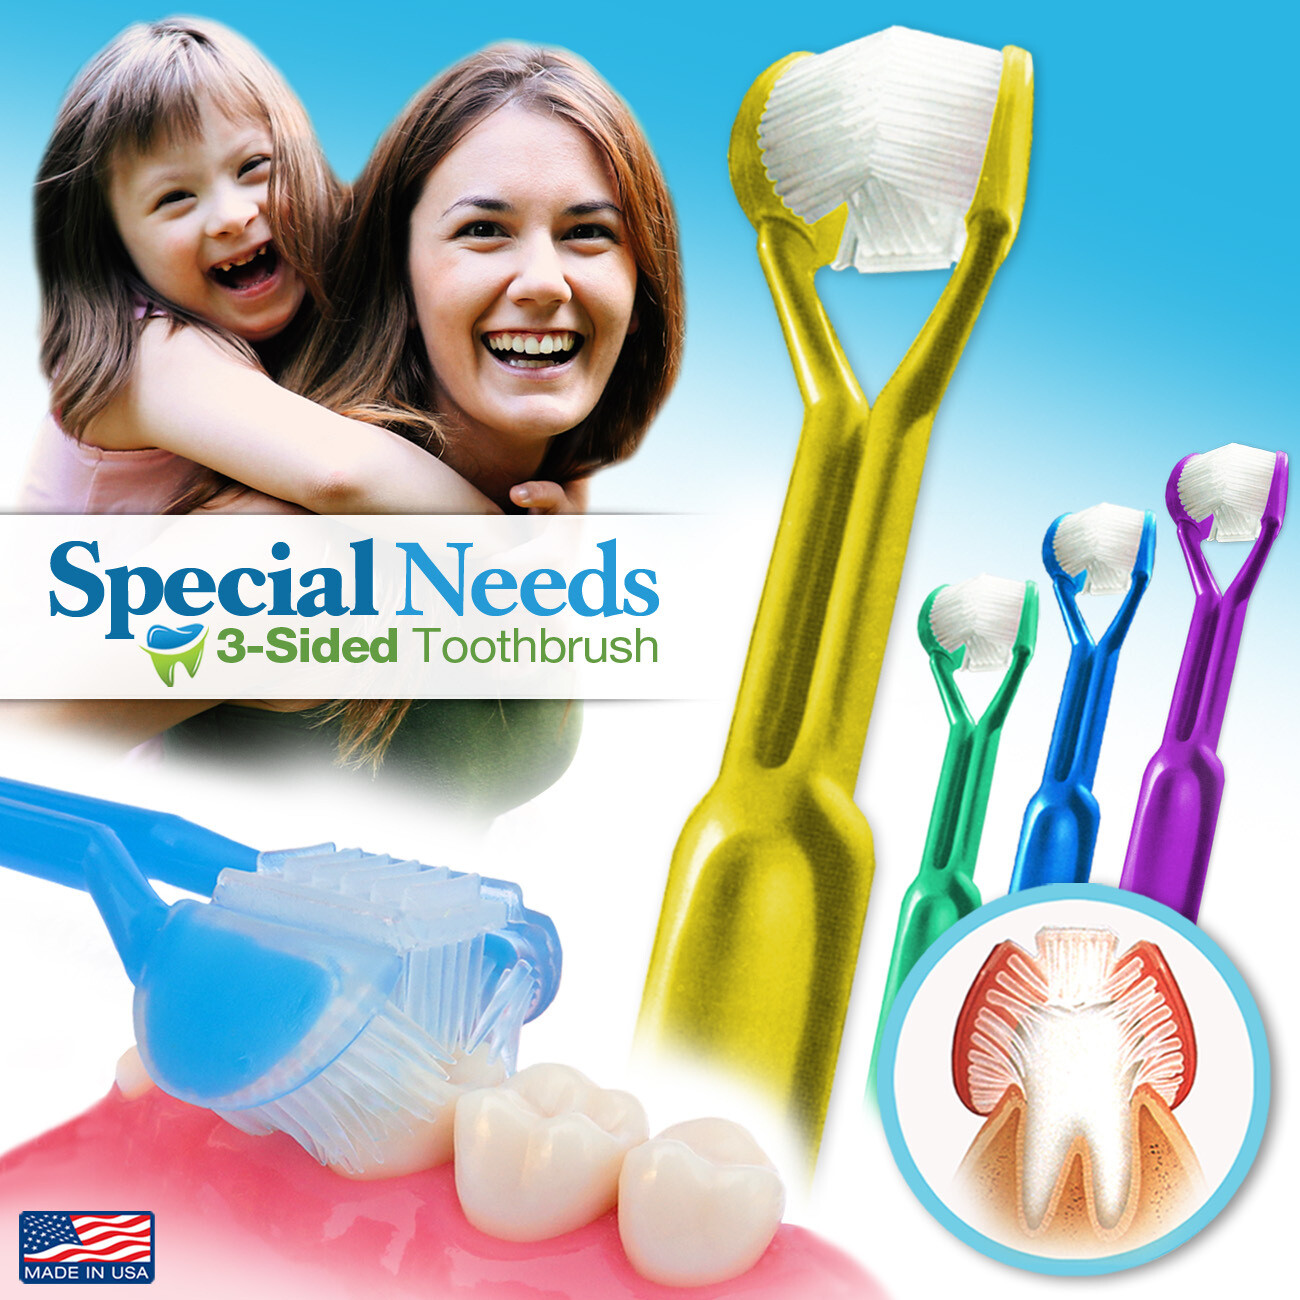 4-PK | DenTrust for Special Needs | The Only Child-Safe 3-SIDED Toothbrush | Made in USA | Fast Easy & Clinically Proven | Autism ASD Autistic Asperger Therapy Parent Caregiver Tactile Sensory Calming